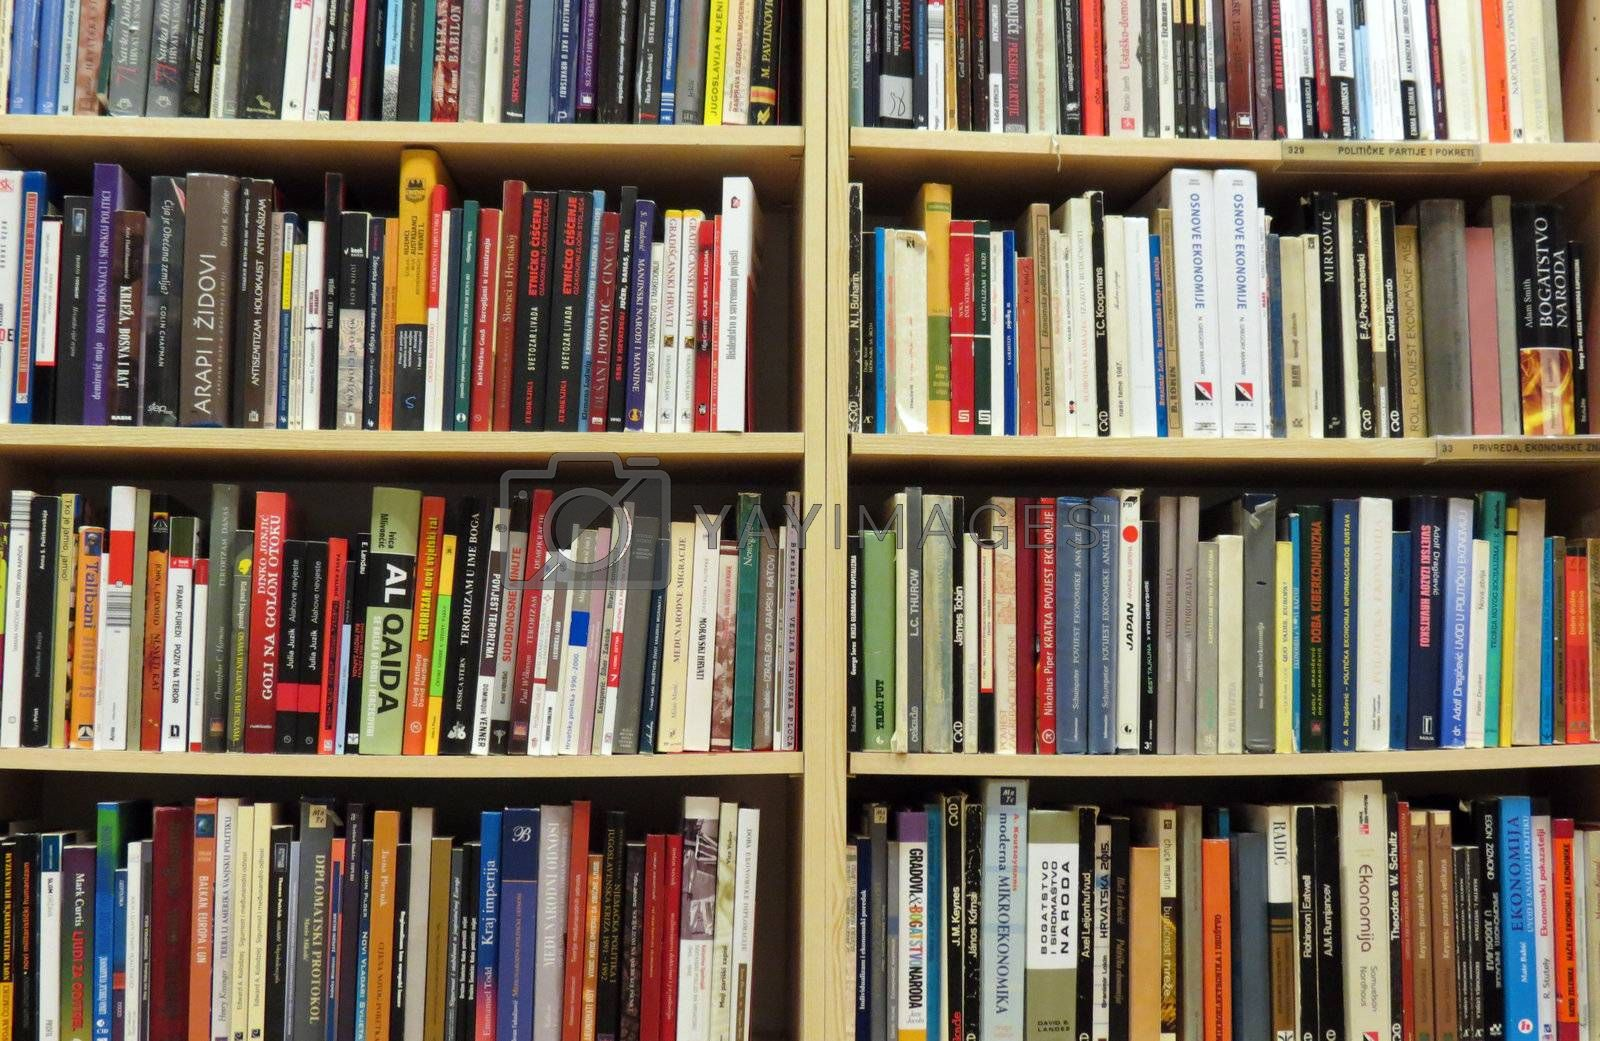 Bookshelf in library with many books